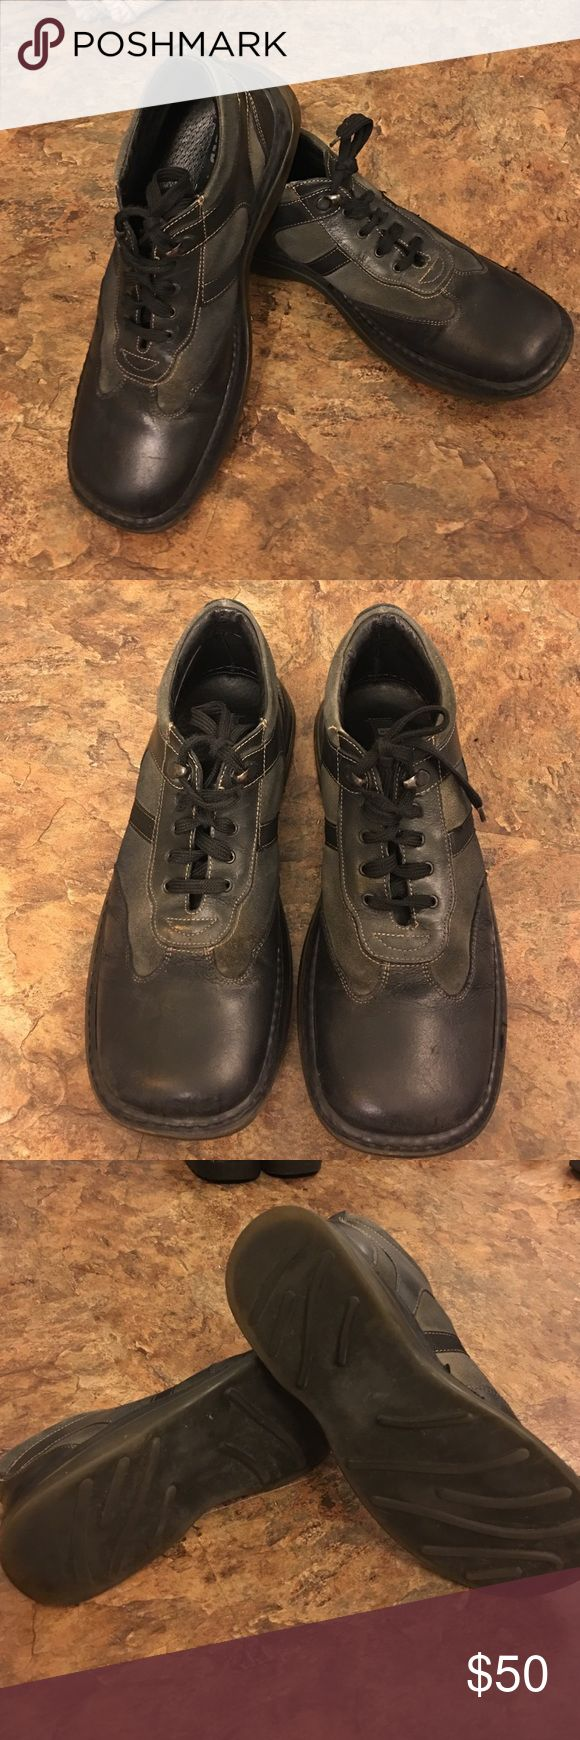 Bed Stu Shoes Leather made in Italy casual dress shoes. Can wear for work or play. Excellent condition. Bed Stu Shoes Oxfords & Derbys